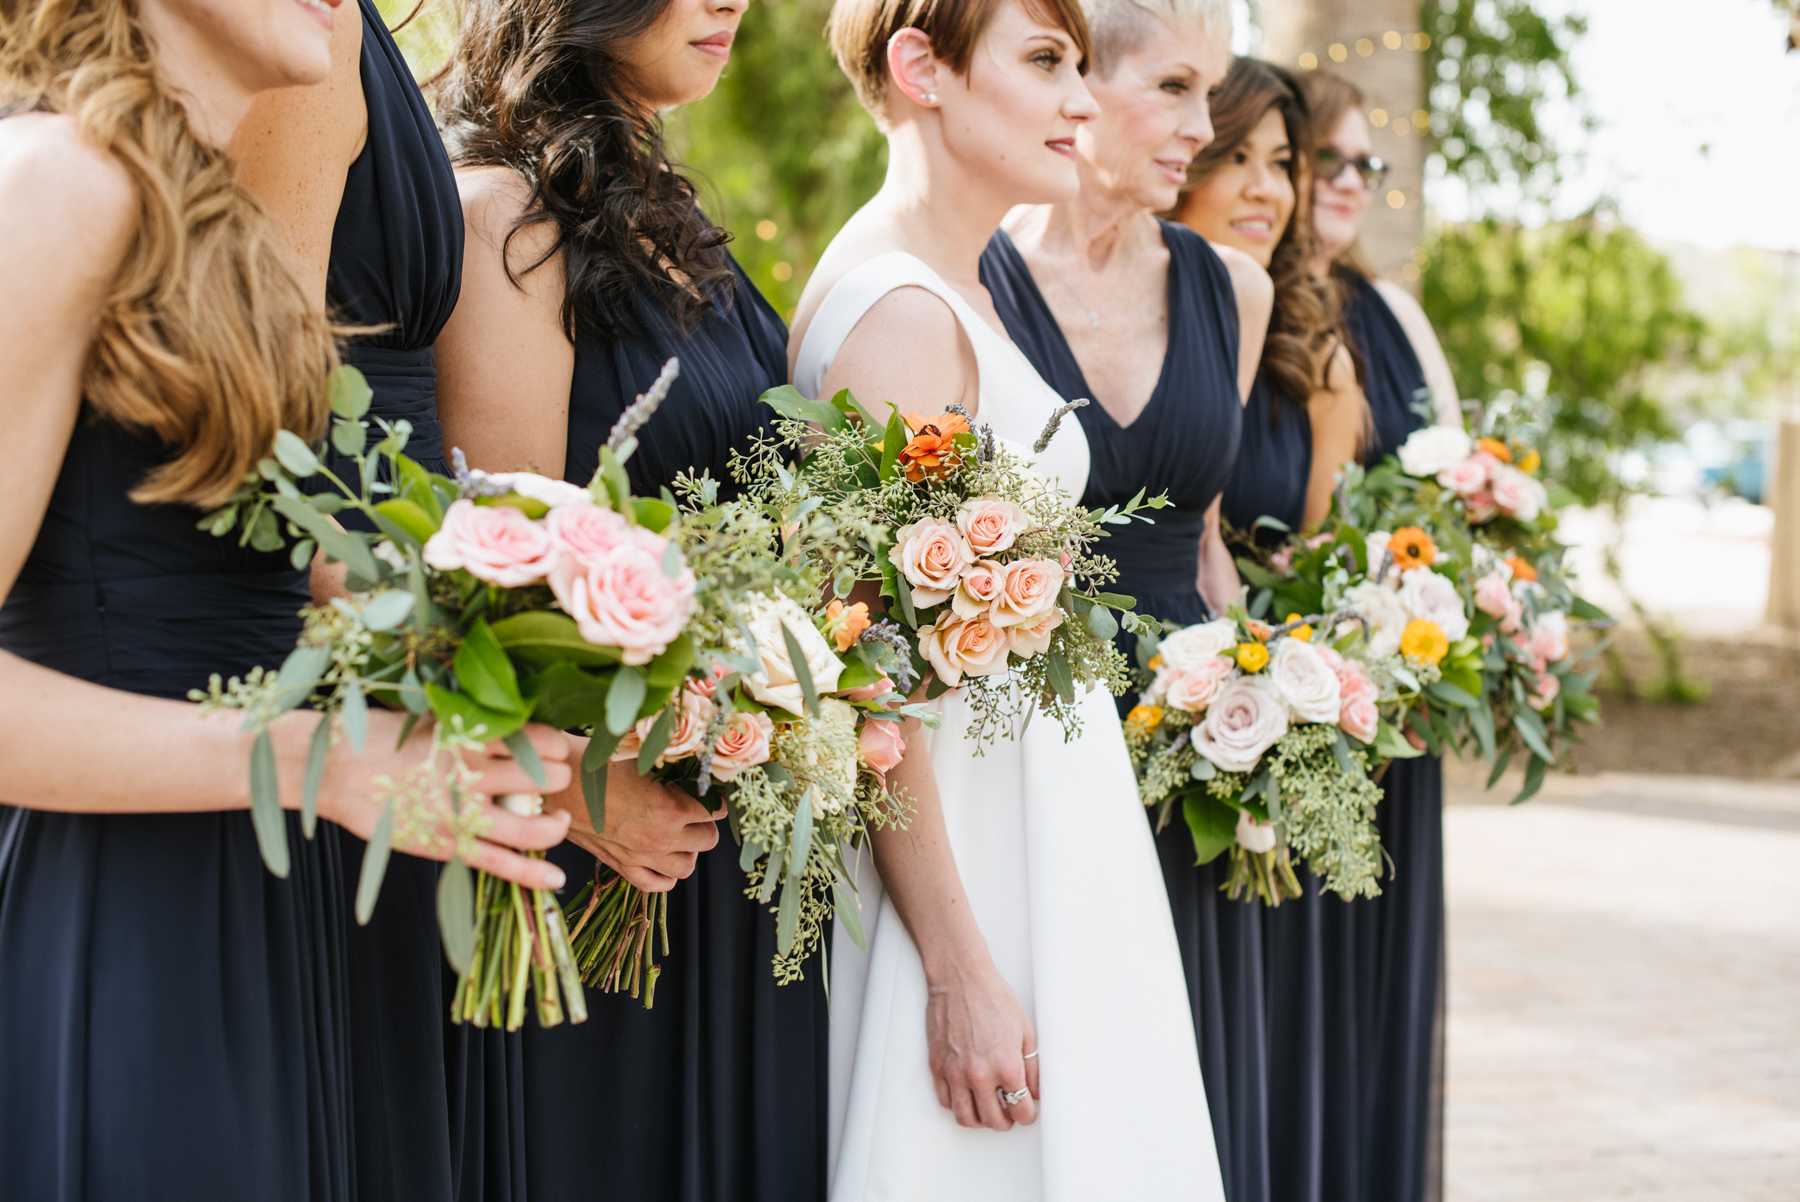 Secret Garden Event Center Wedding - Meredith Amadee Photography-63.jpg